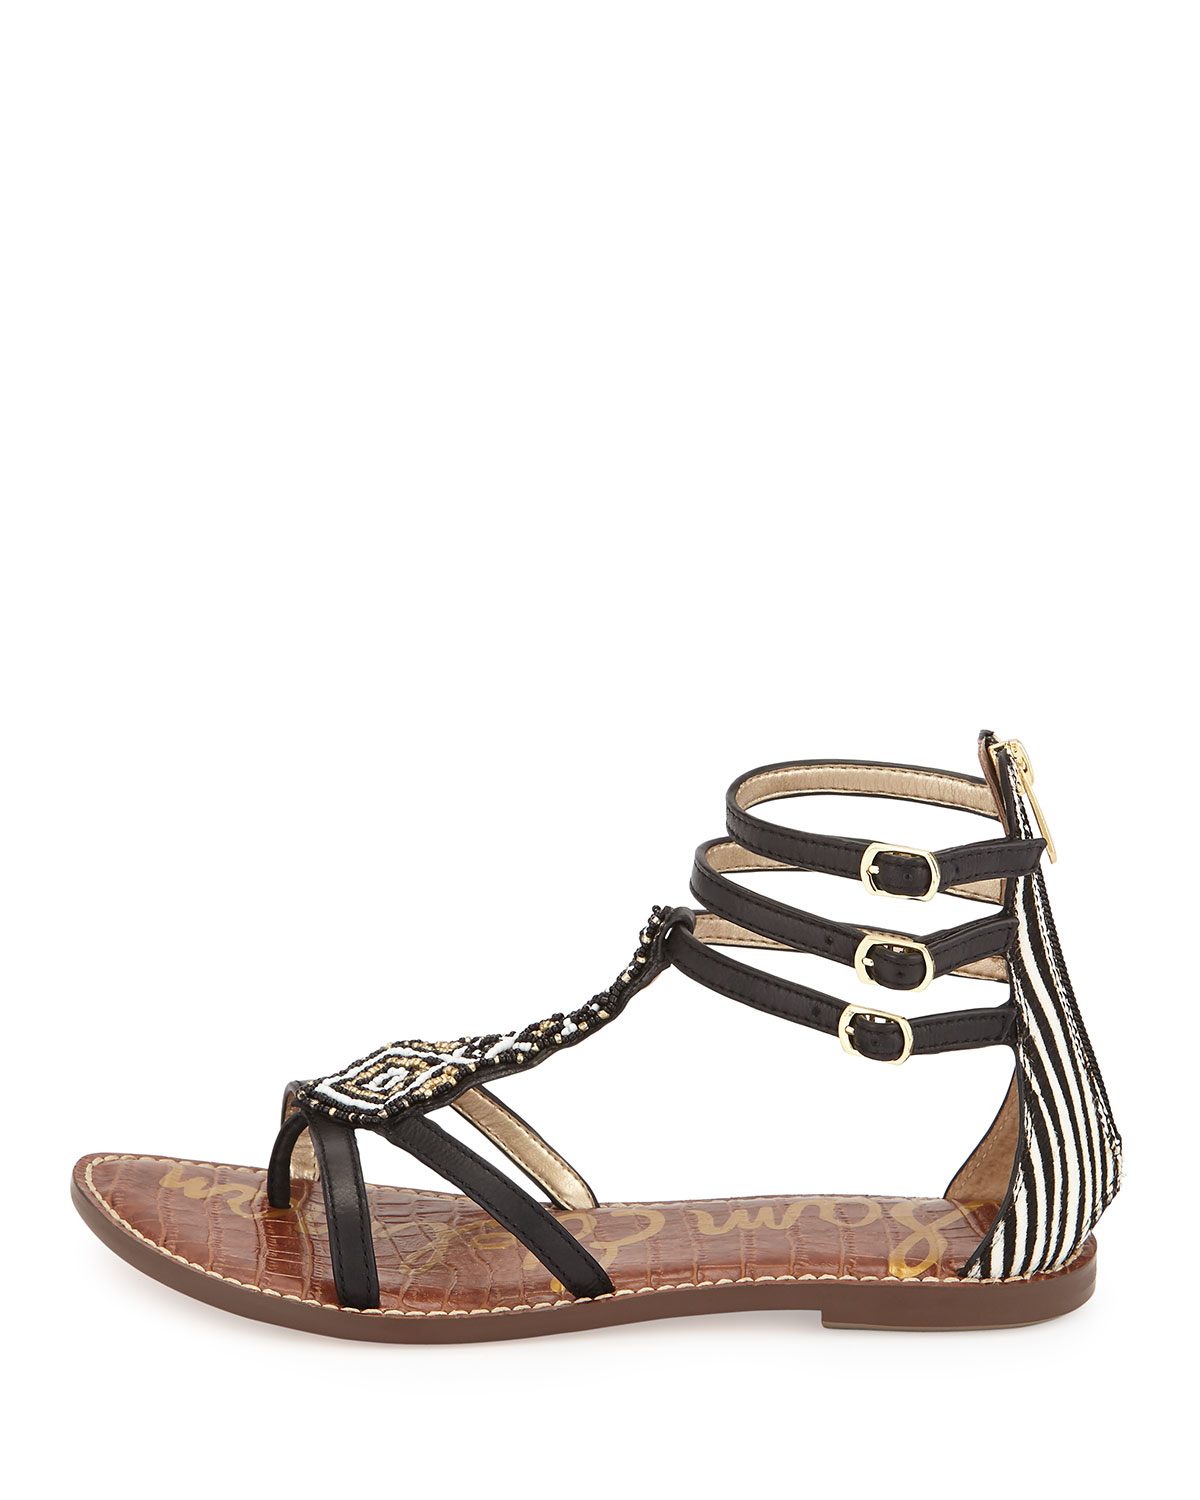 b6c13e425 Gallery. Previously sold at  Neiman Marcus · Women s Gladiator Sandals